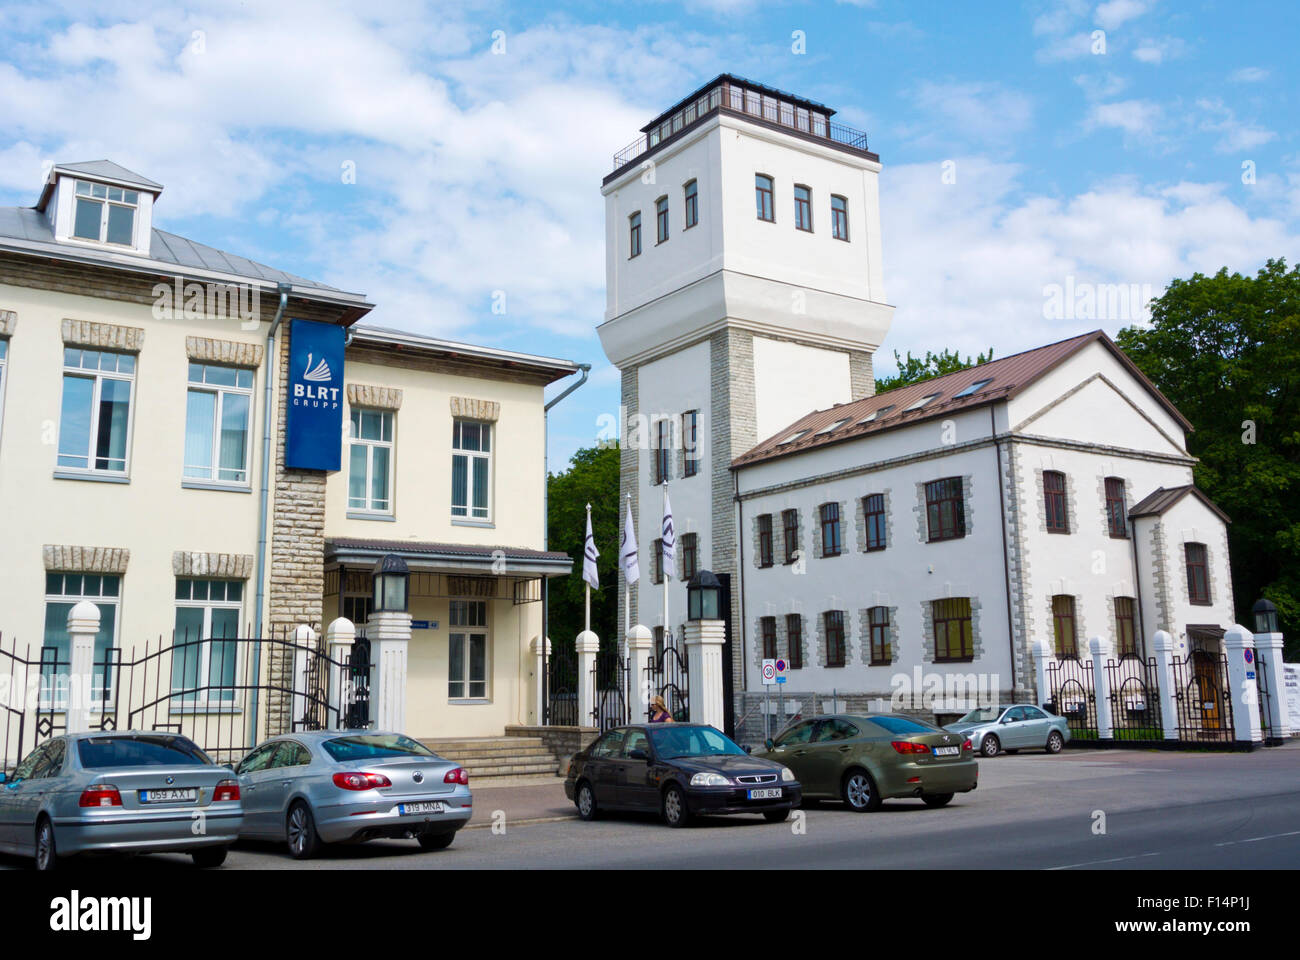 Noblessneri valukoda, Tallinn, Harju county, Estonia, Europe - Stock Image